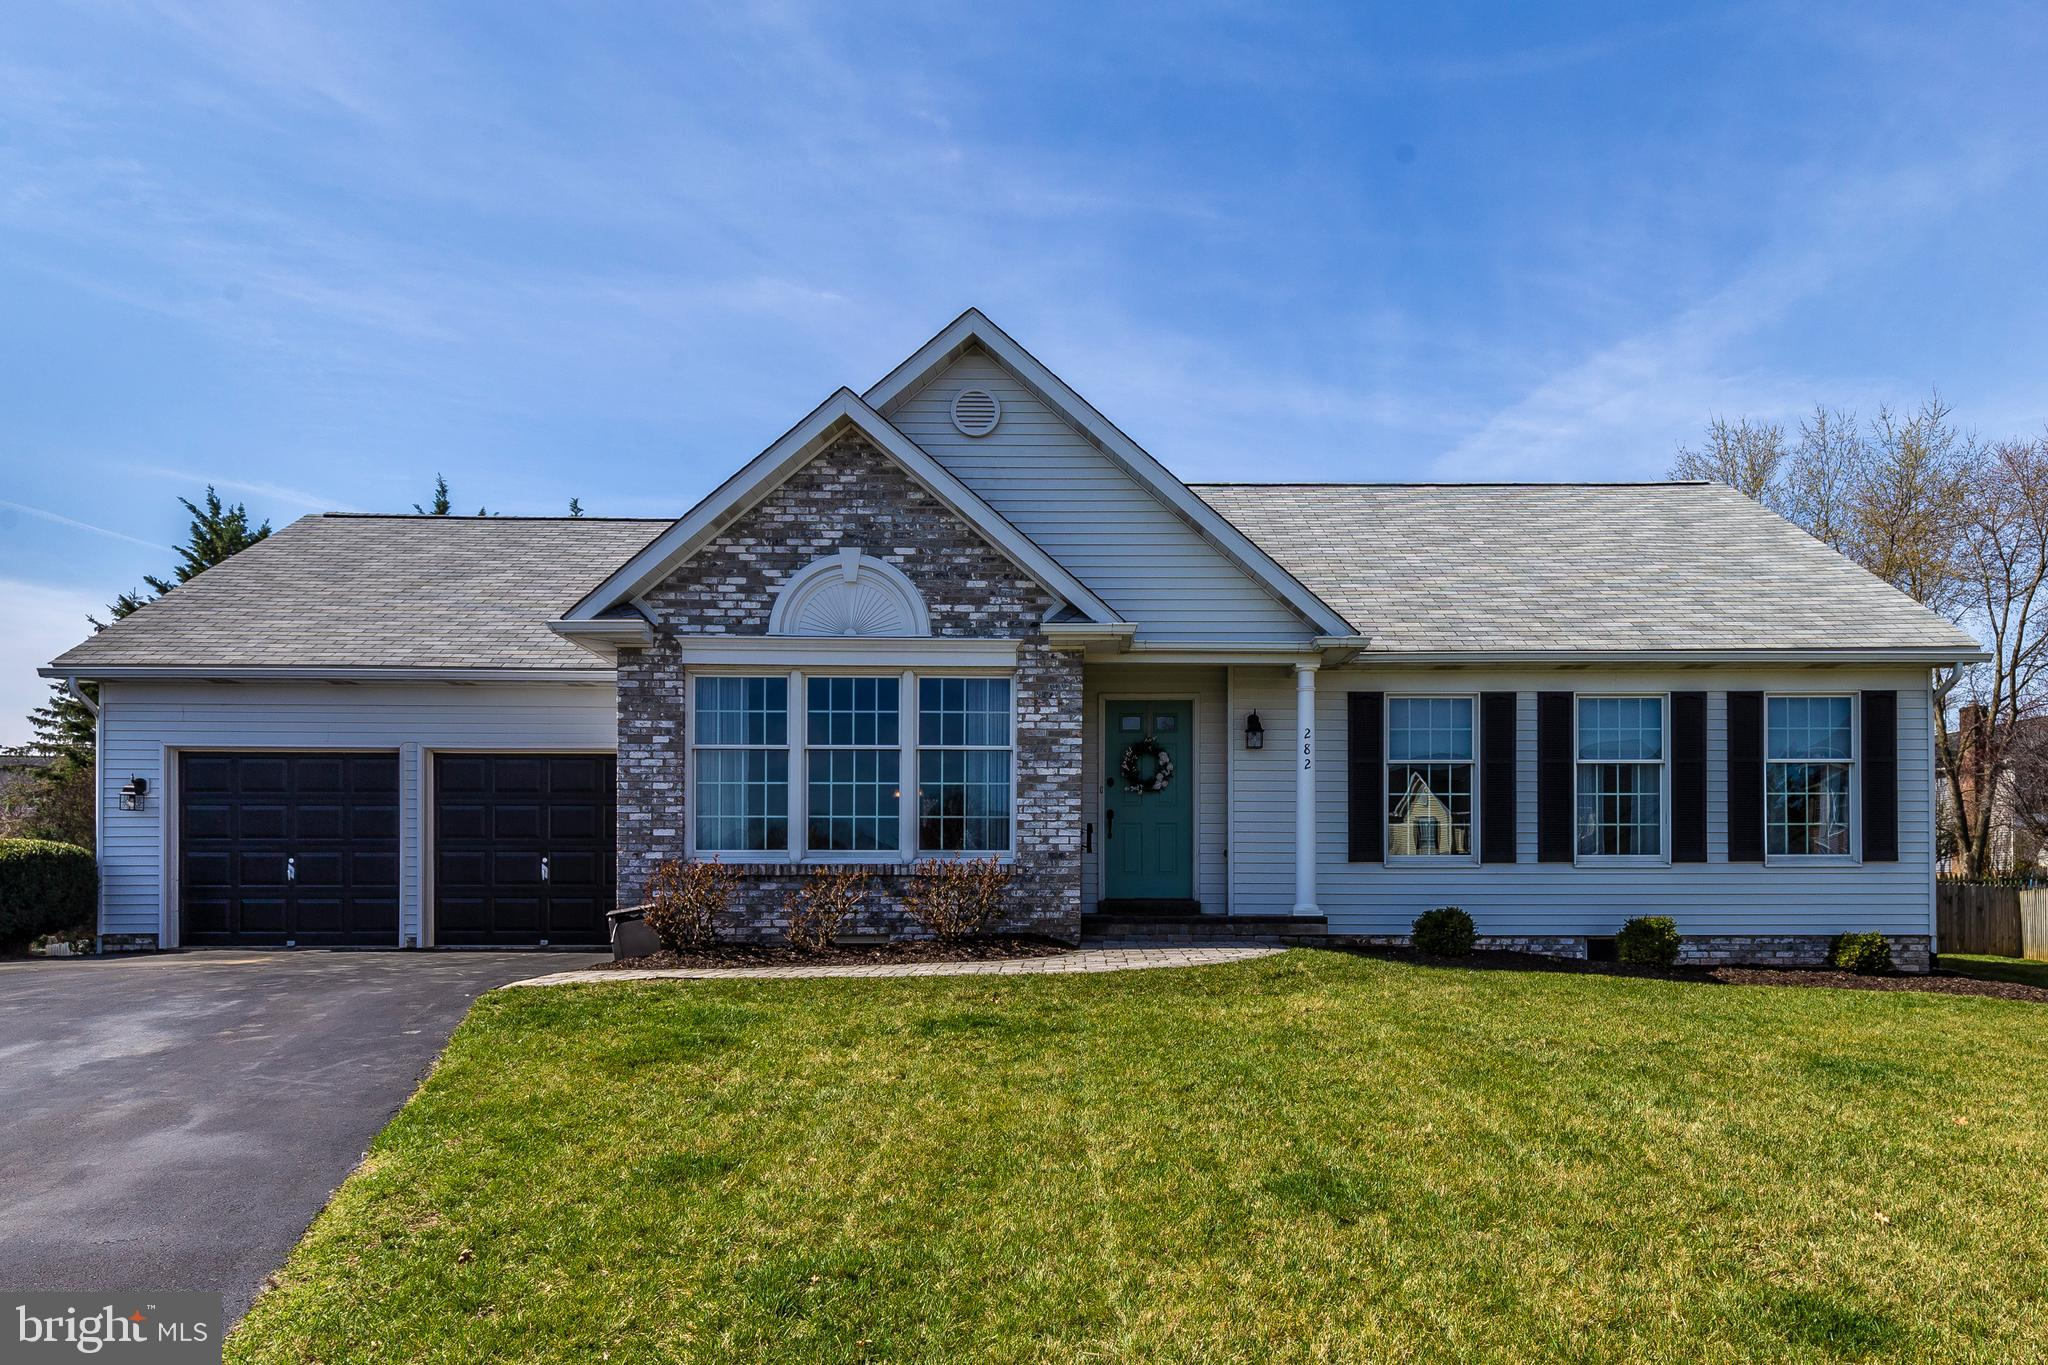 282 KENWOOD PLACE, WALKERSVILLE, MD 21793